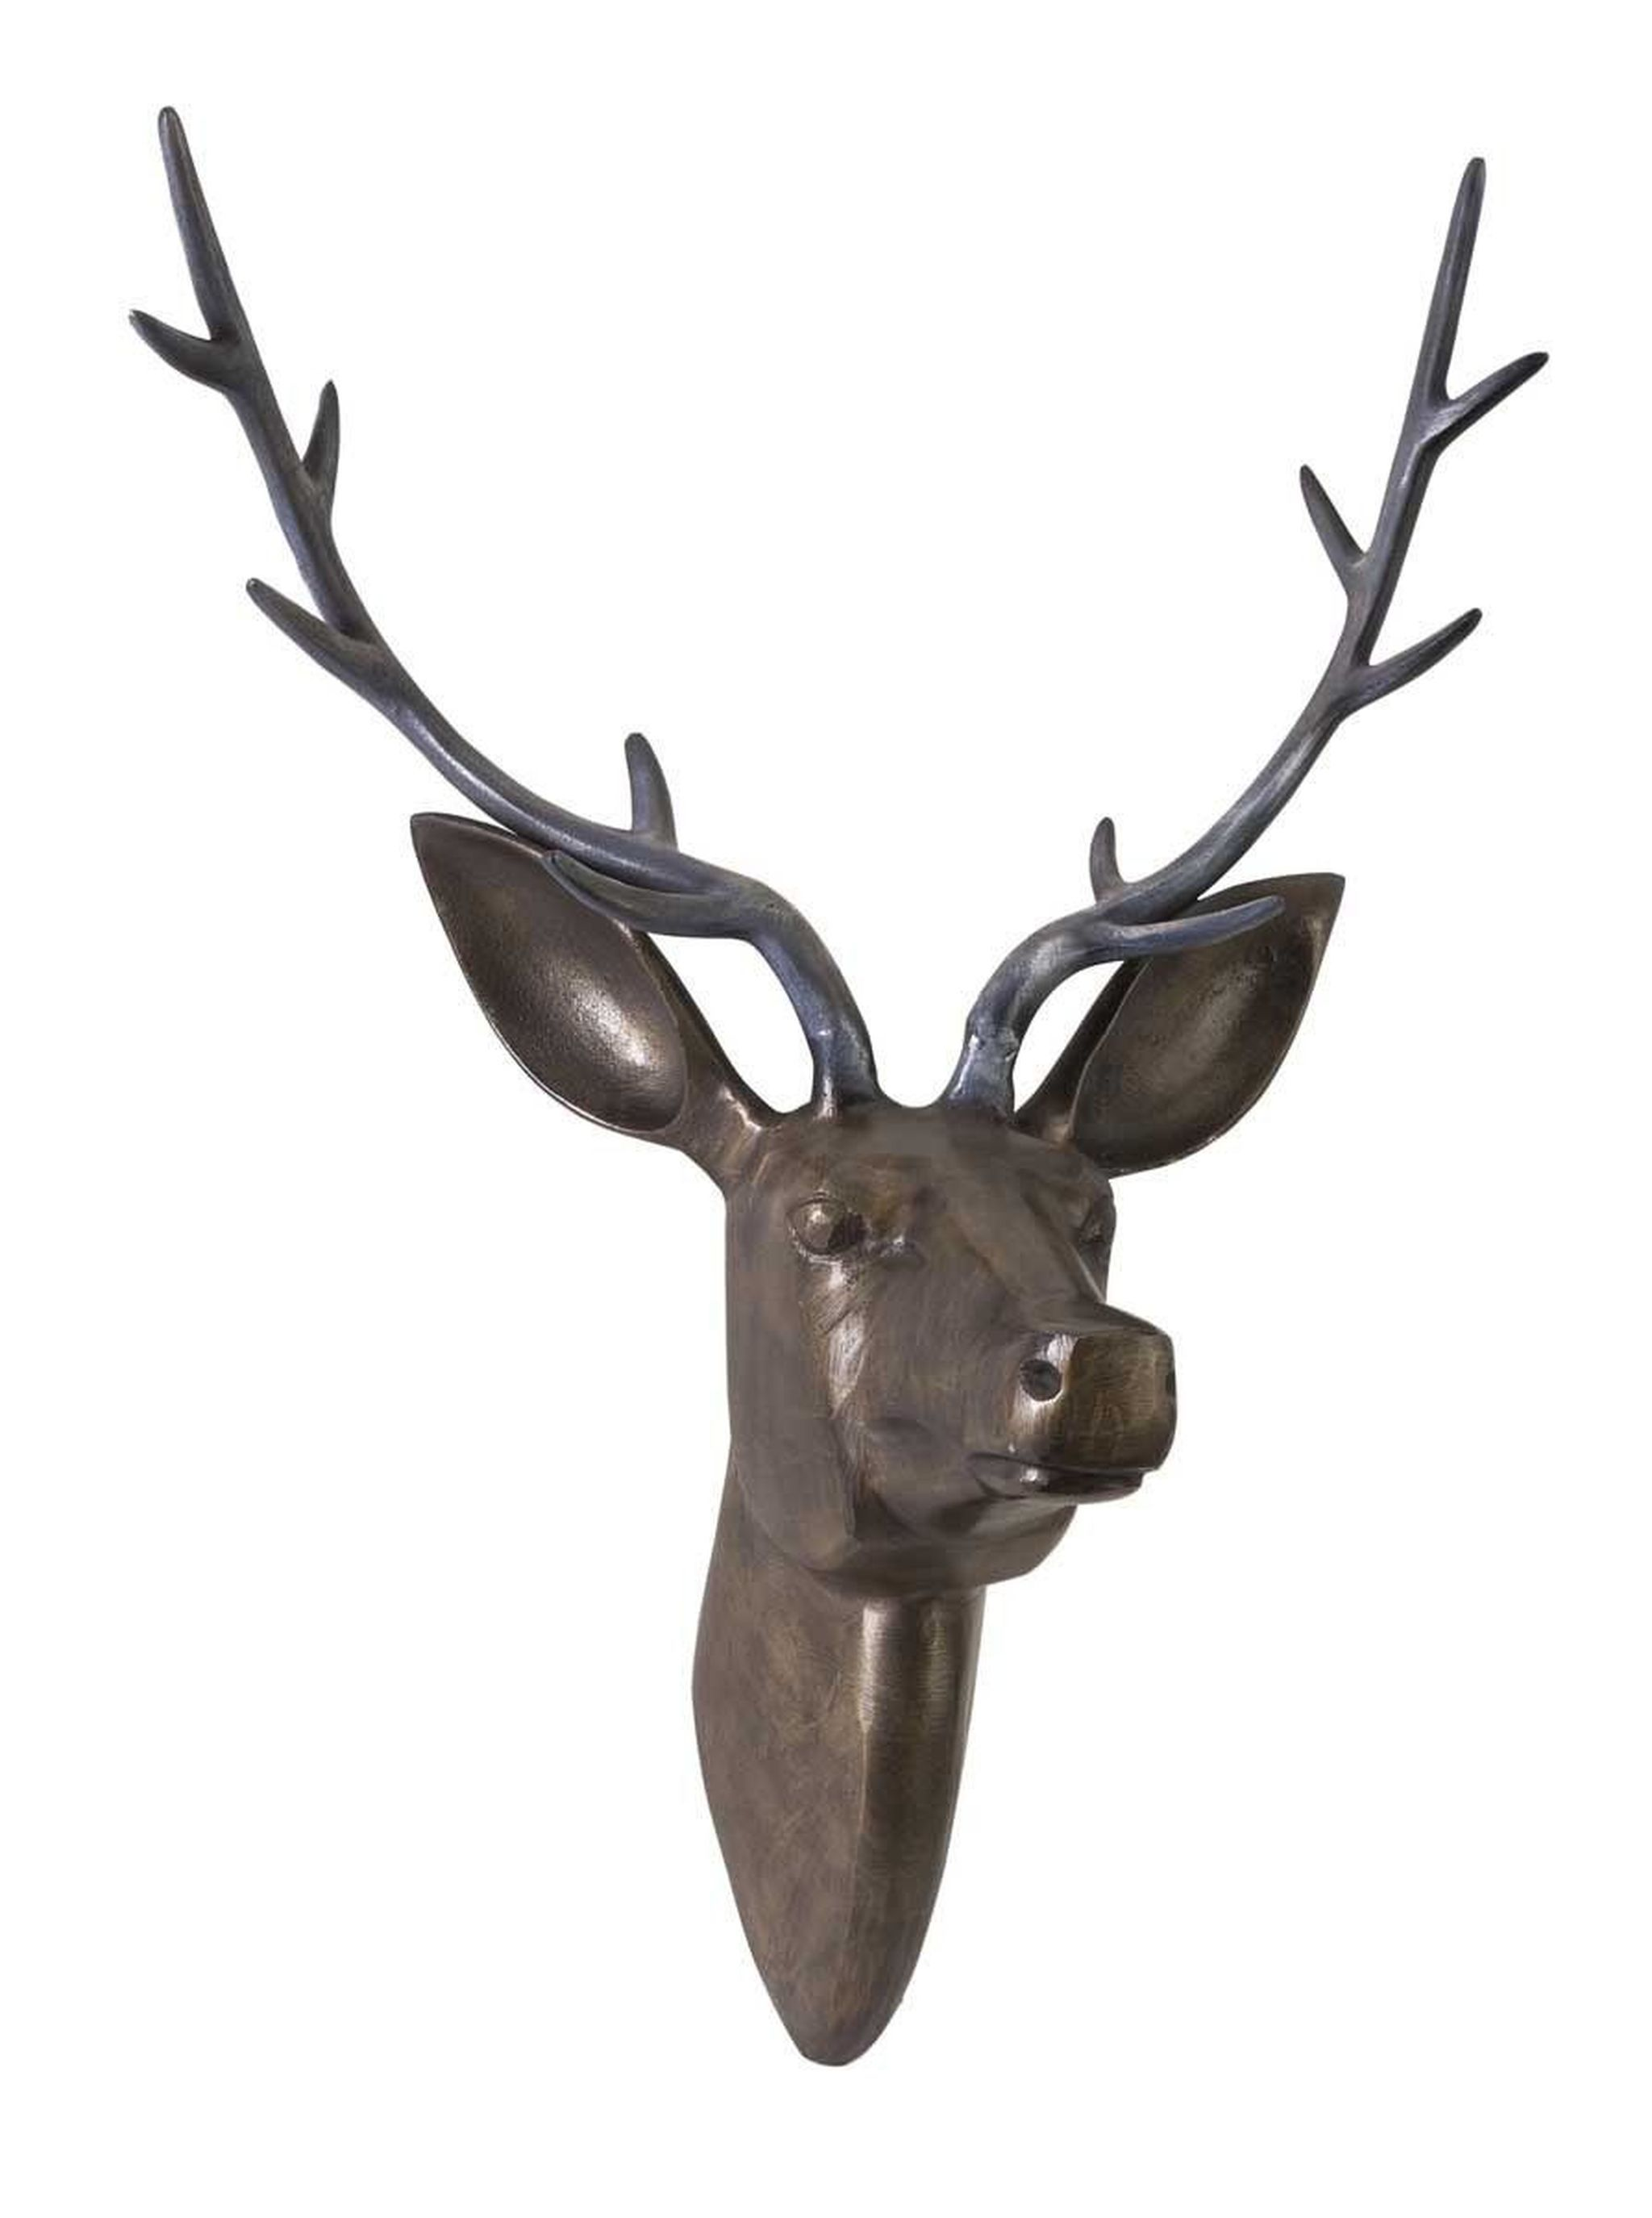 125 10 Imax Goodwin Aluminum Deer Head In 2019 Deer Head Decor Deer Wall Art Wildlife Decor